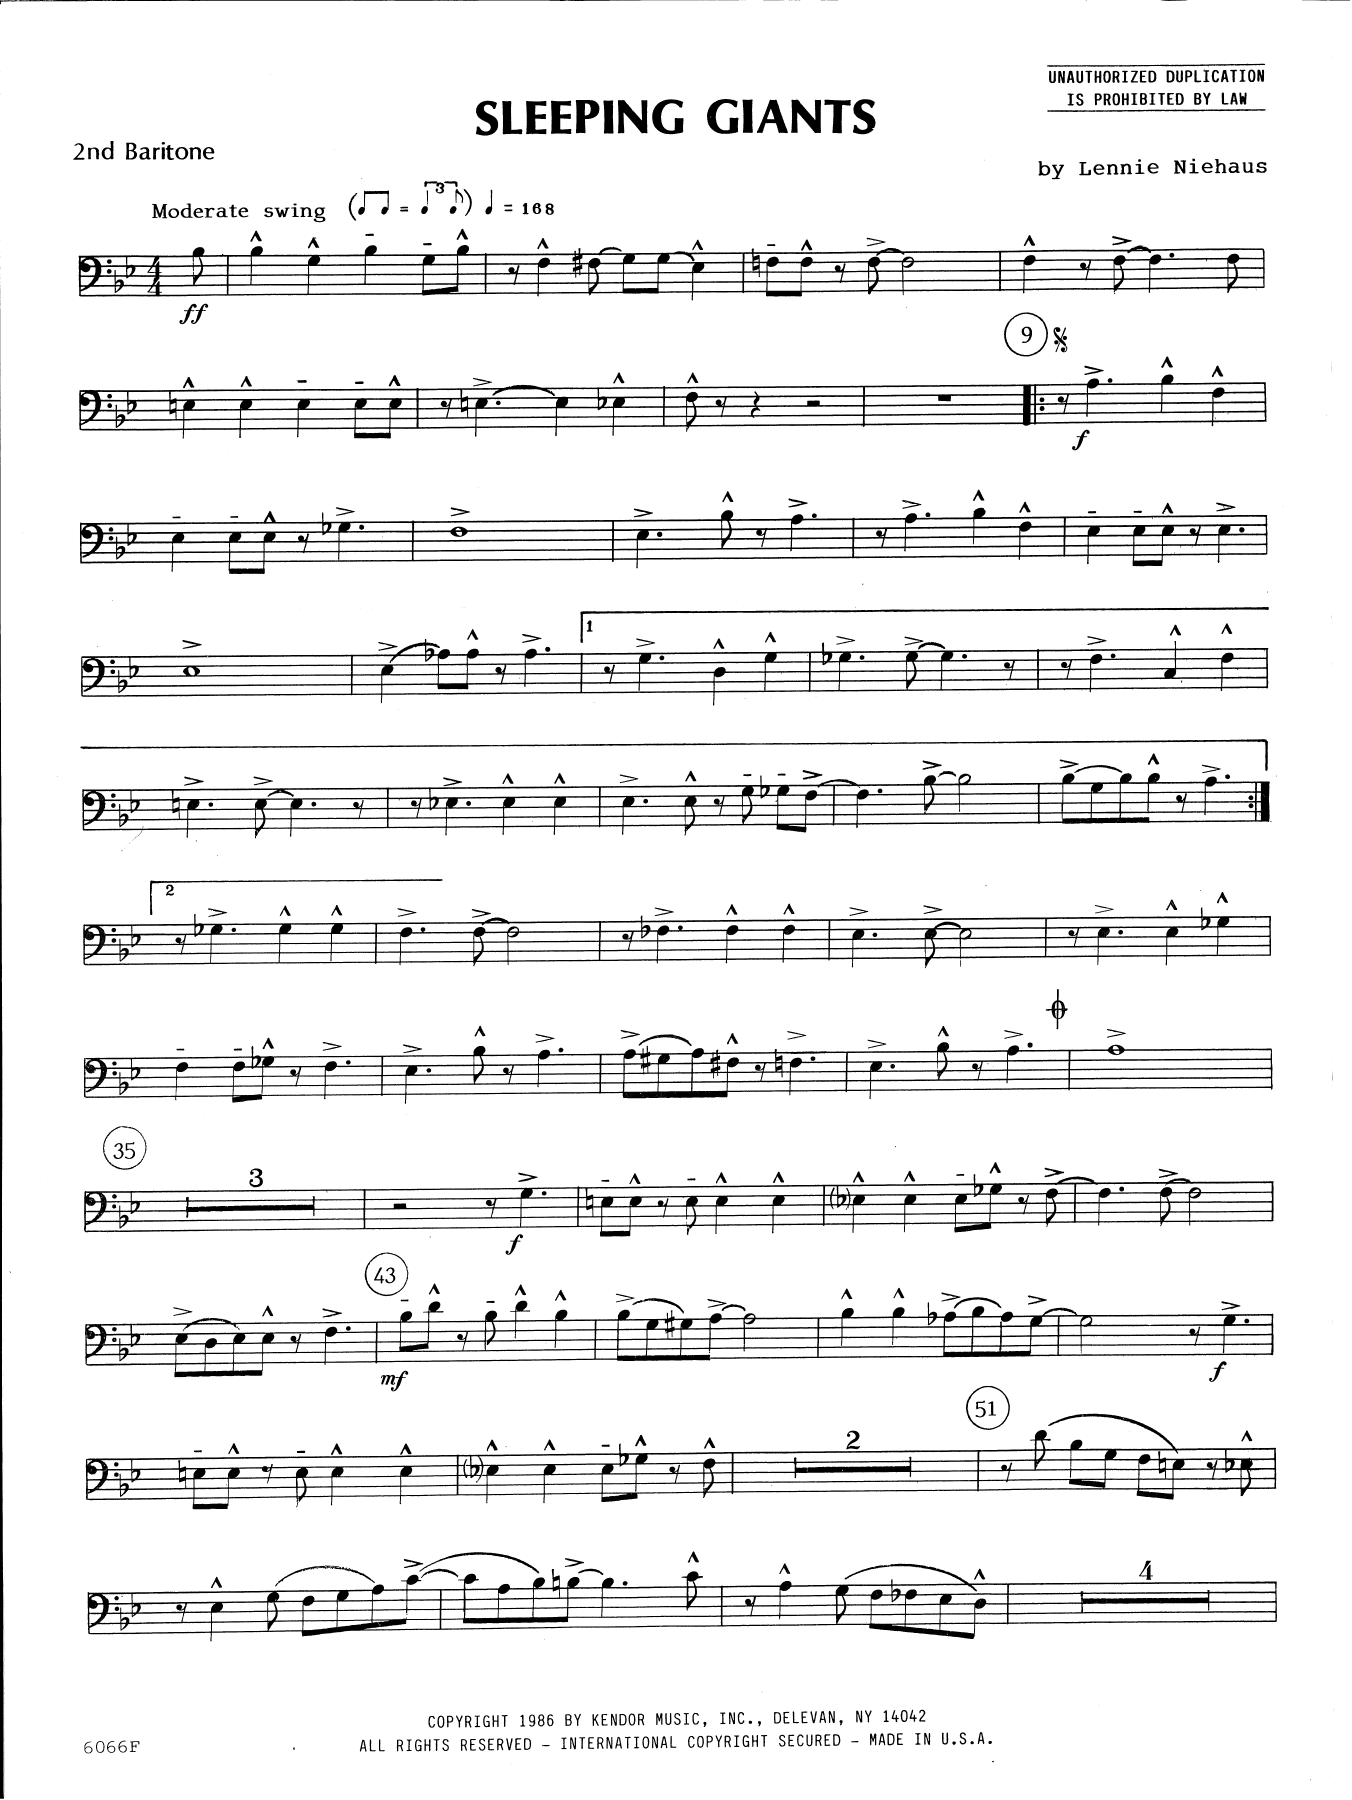 Lennie Niehaus Sleeping Giants - 2nd Baritone B.C. sheet music preview music notes and score for Brass Ensemble including 2 page(s)